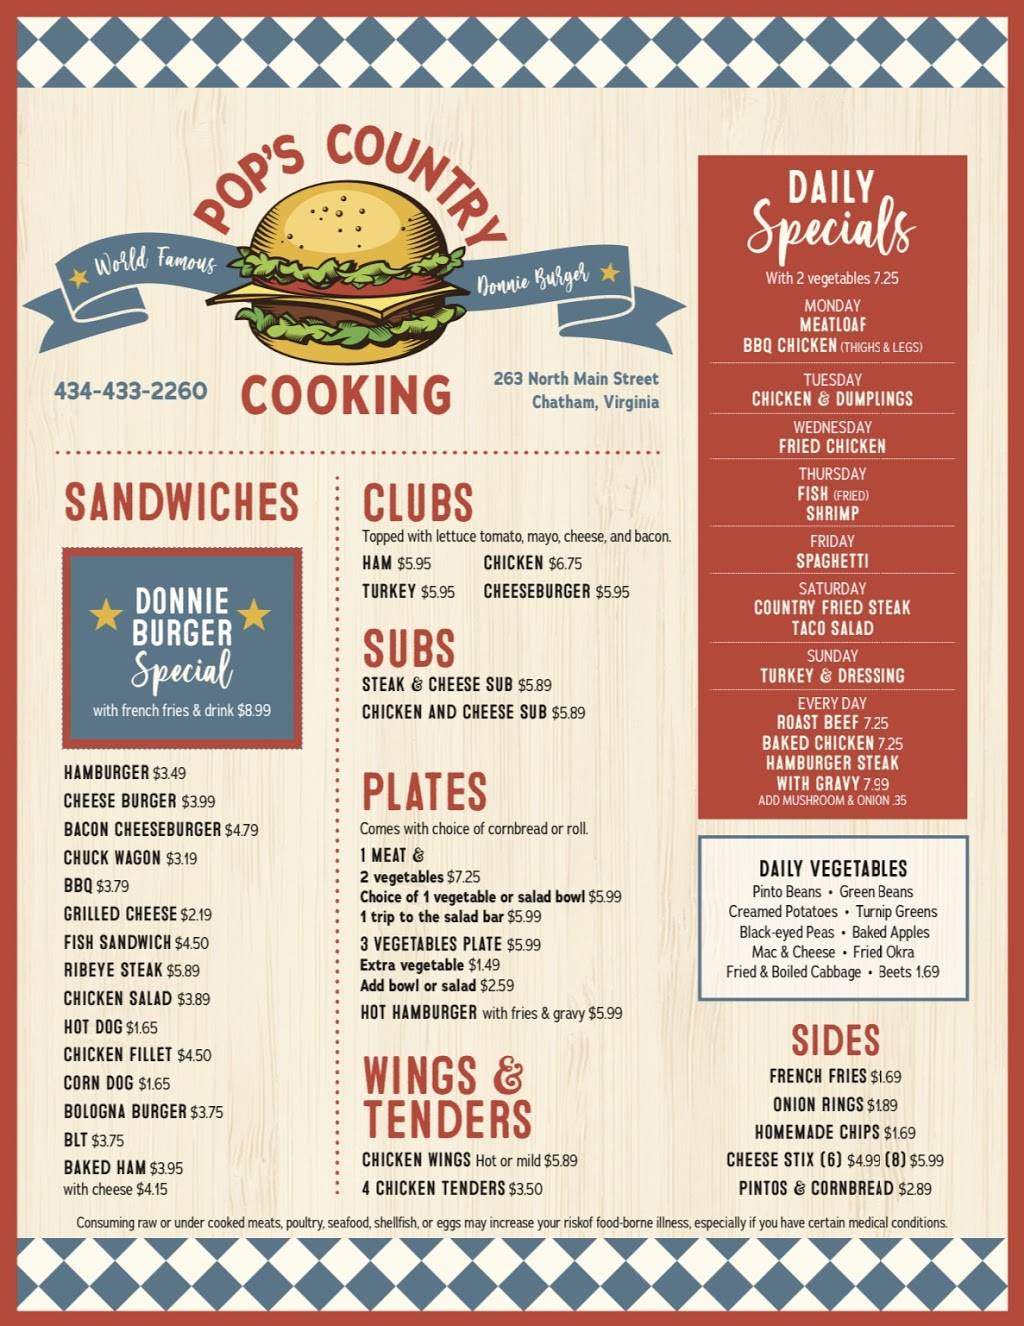 Pop S Country Cooking Restaurant 263 S Main St Chatham Va 24531 Usa